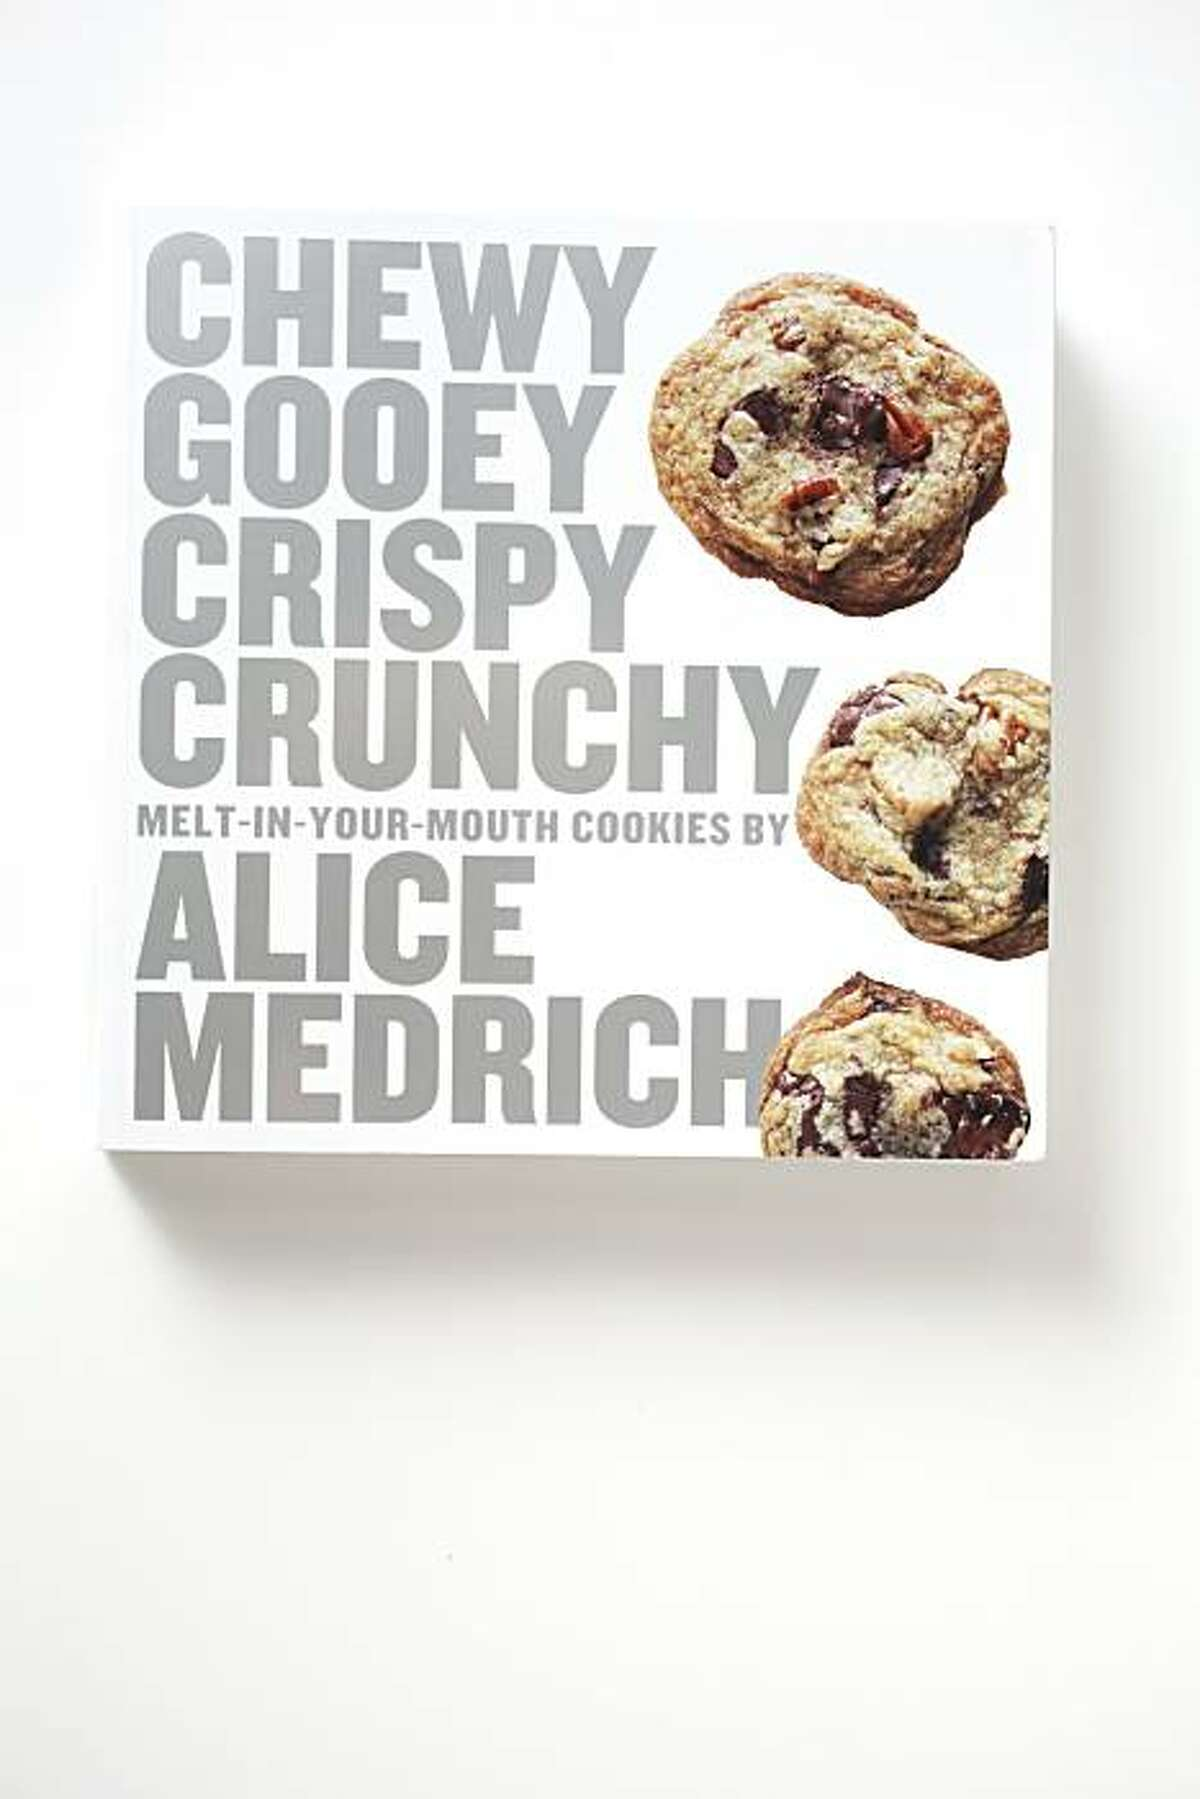 """""""Chewy Gooey Crispy Crunchy Melt-in-Your-Mouth Cookies"""" by Alice Medrich as seen in San Francisco, Calif., on November 23, 2010."""